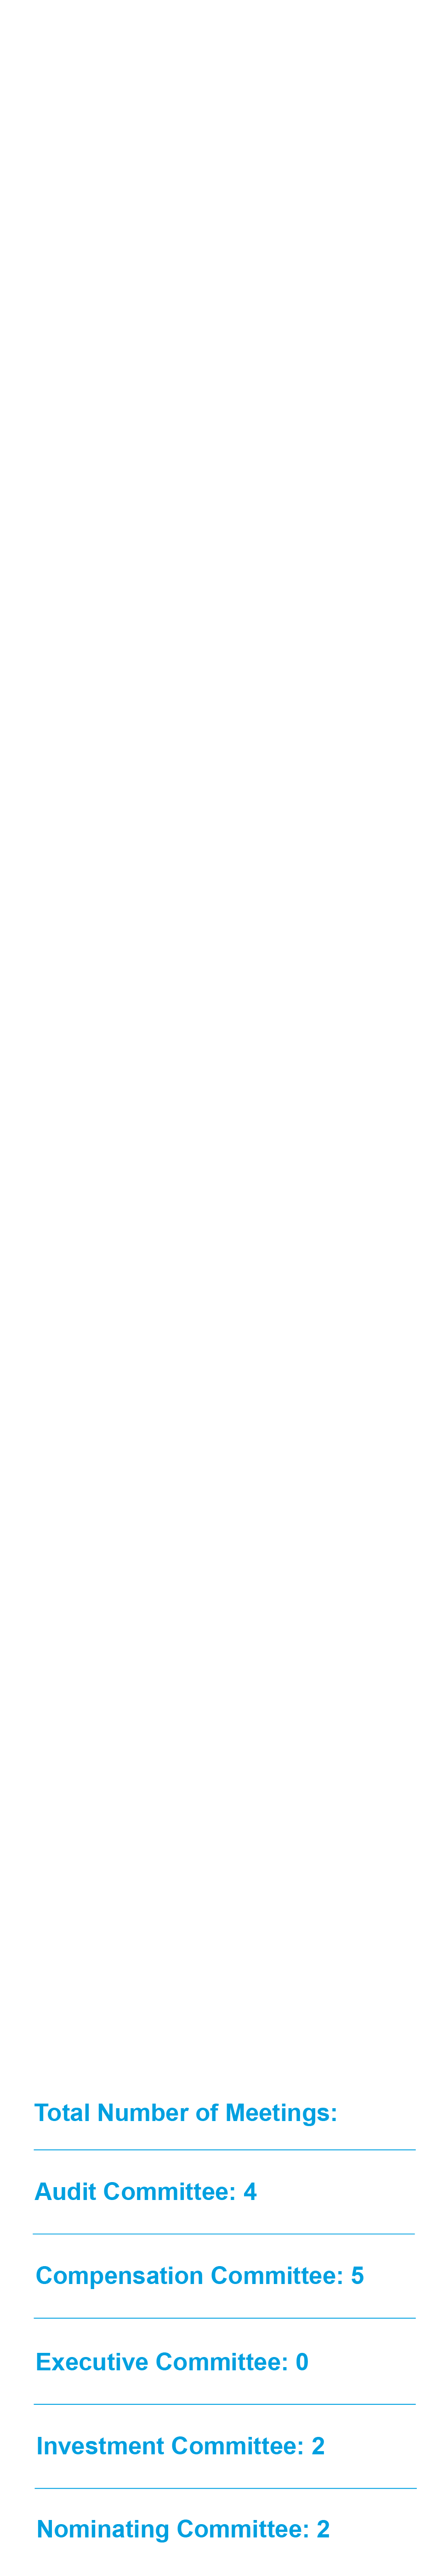 Board Membership Overview Mobile